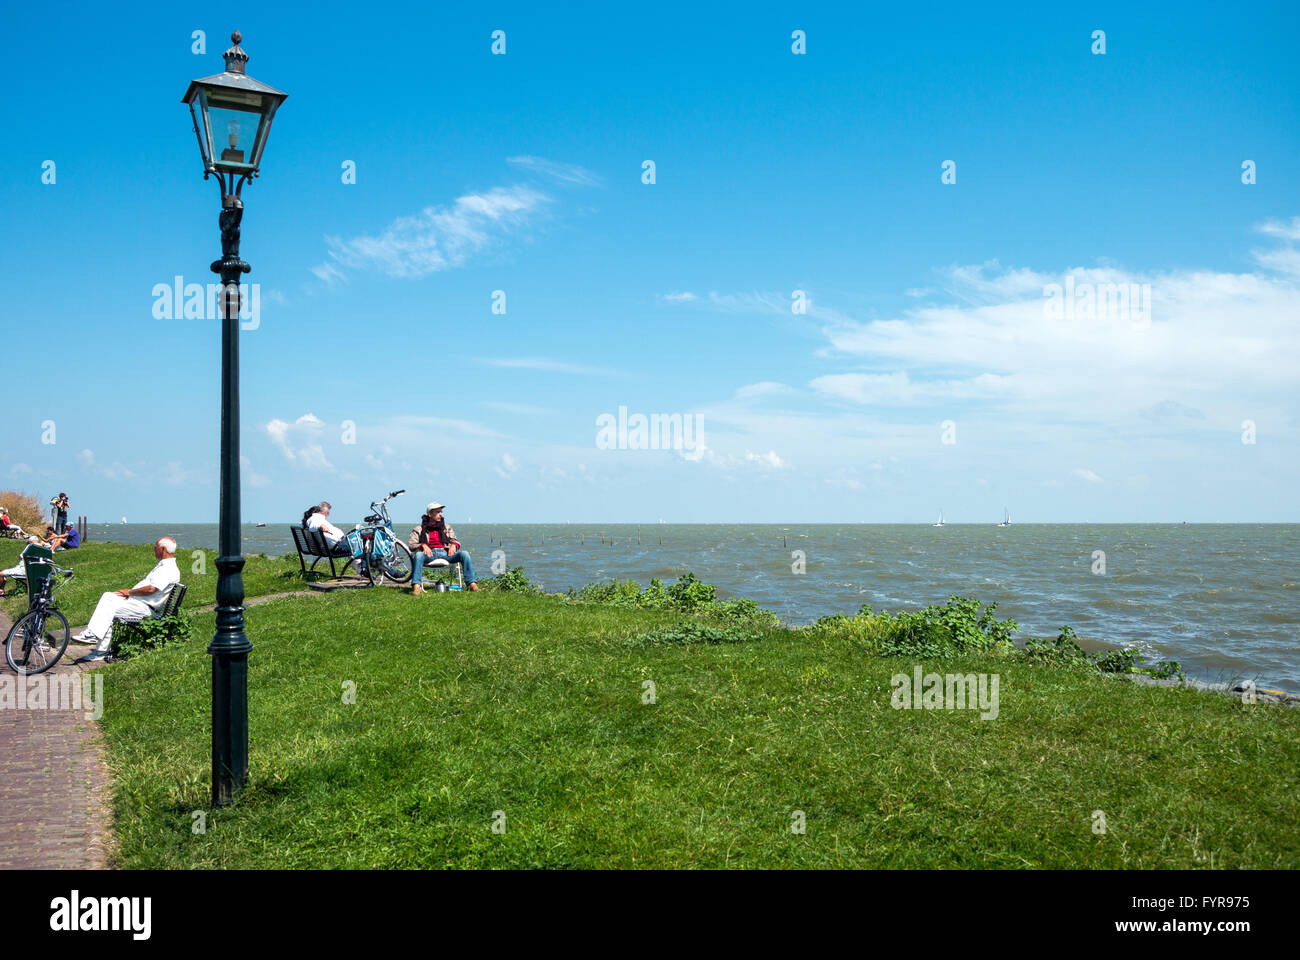 Amsterdam, Waterland district, Volendam, people on the seafront Stock Photo